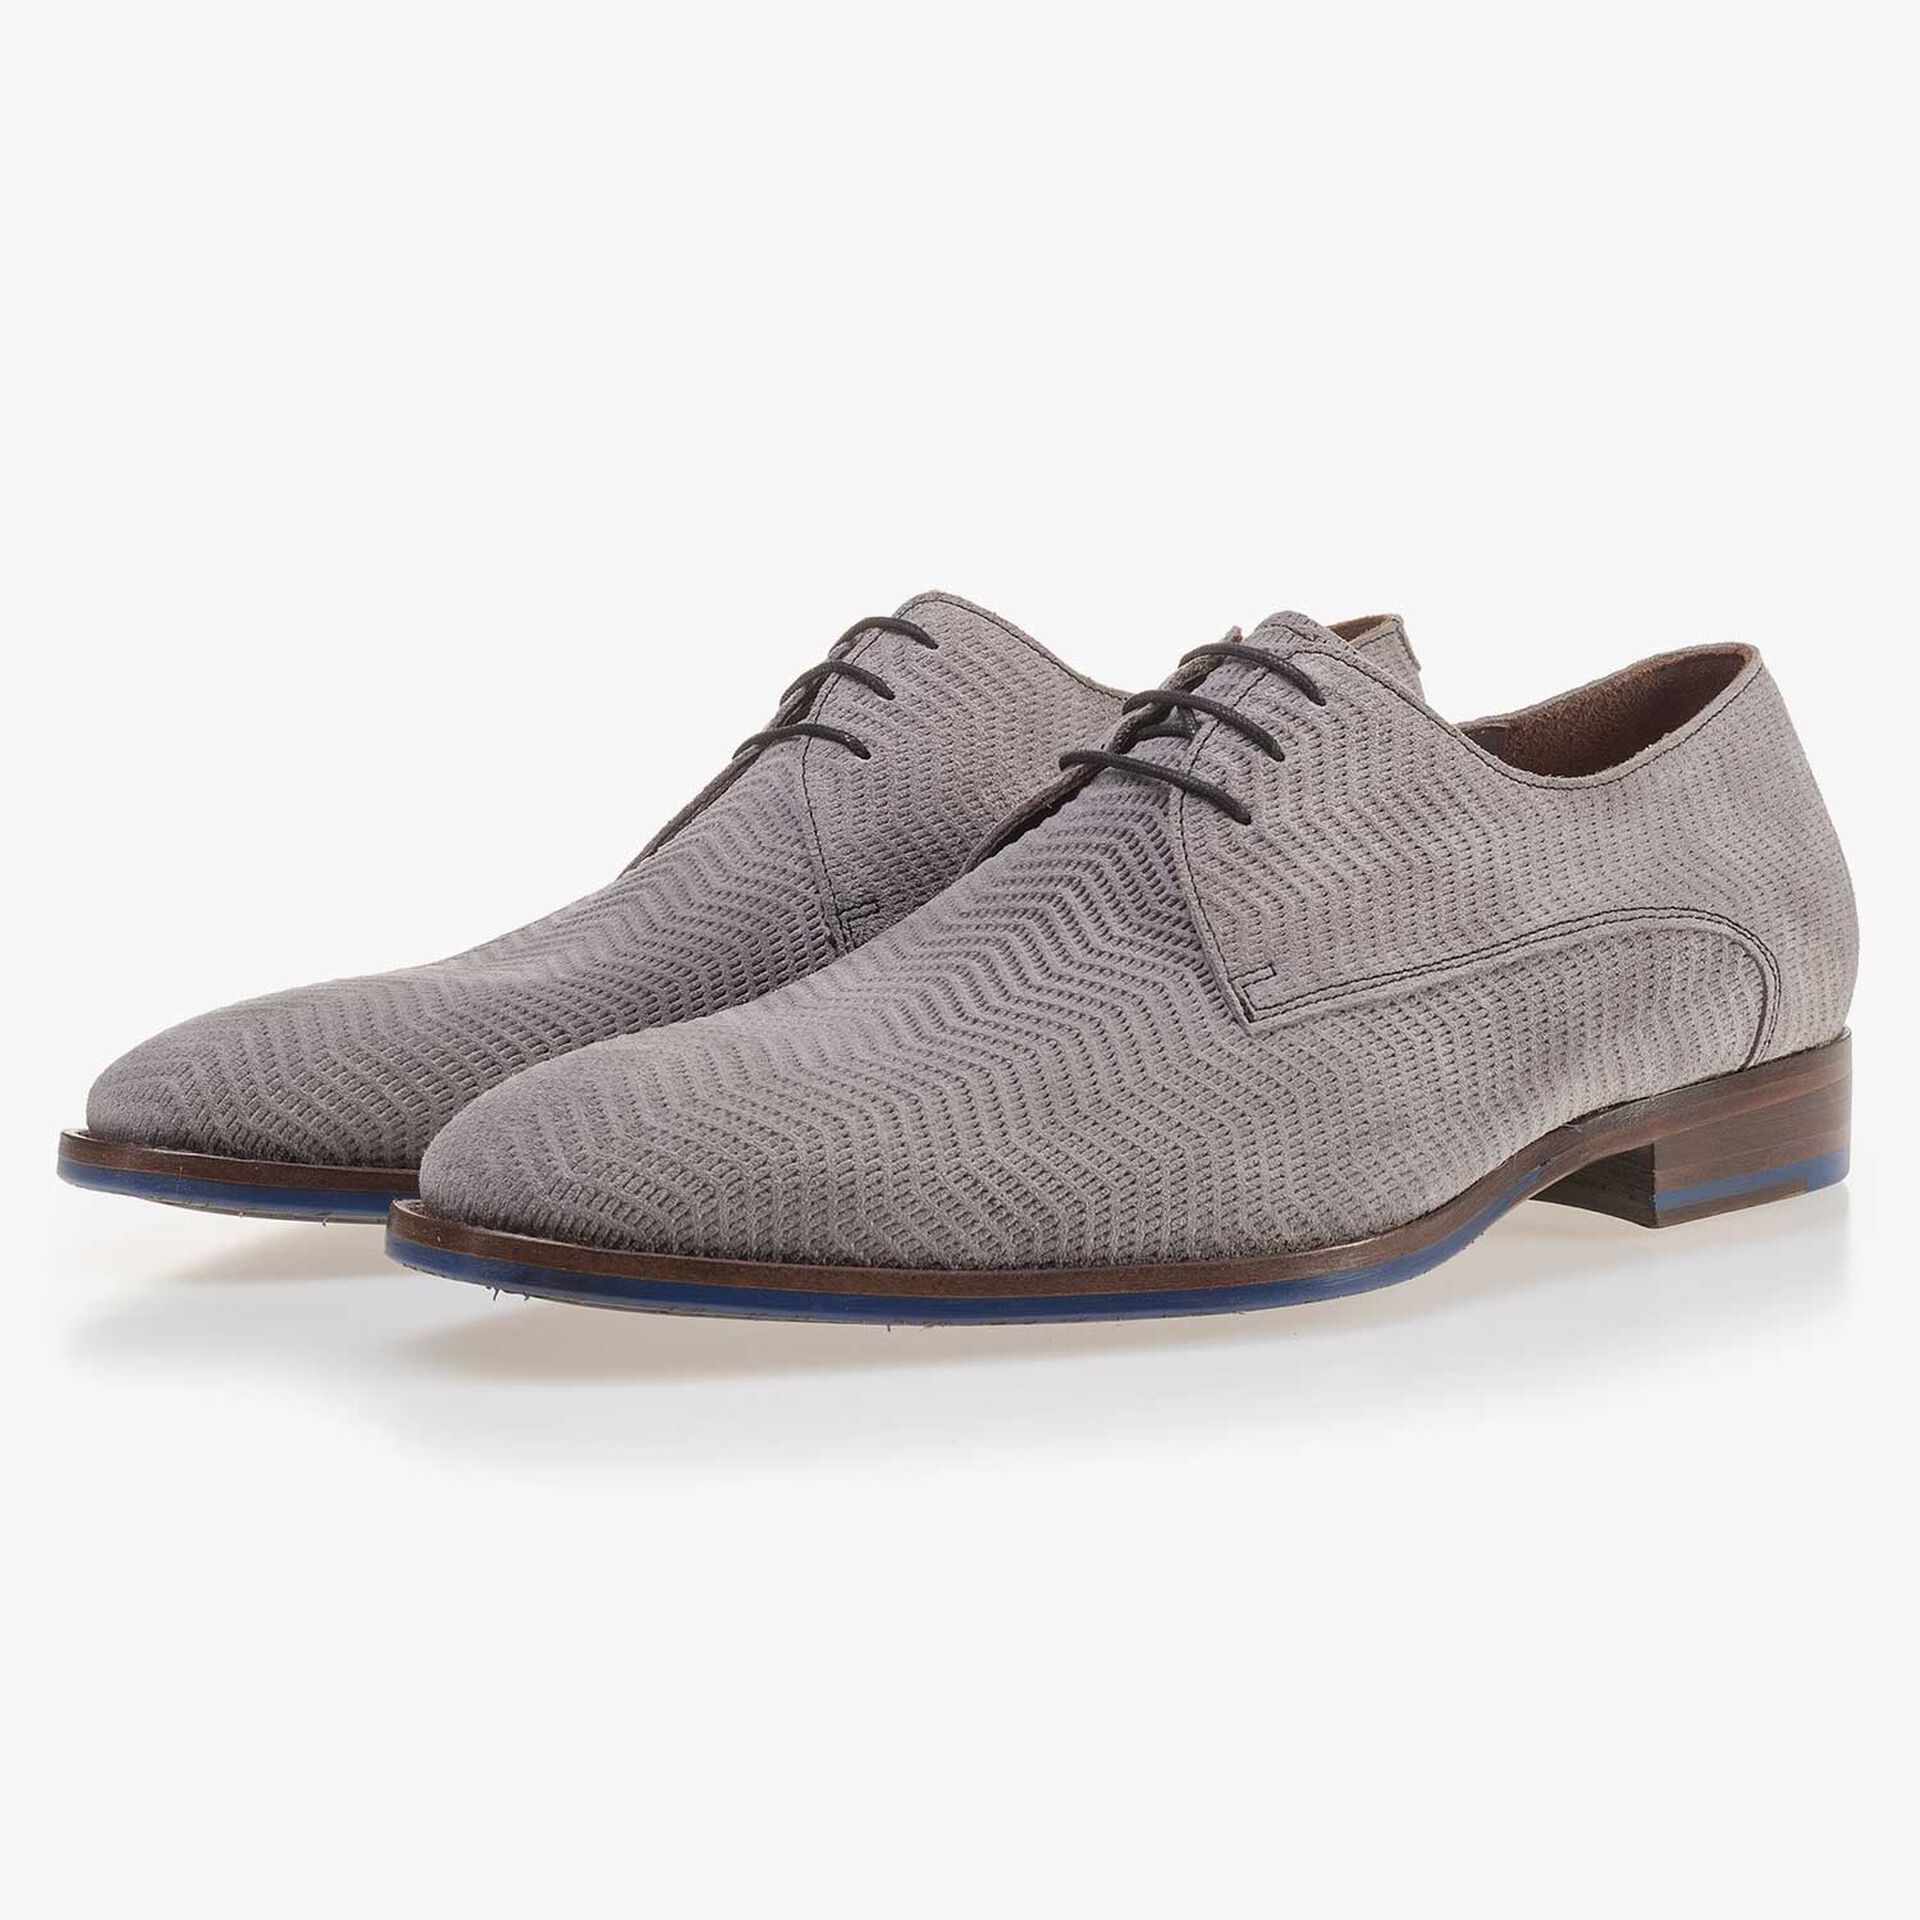 Grey suede lace shoe with pattern